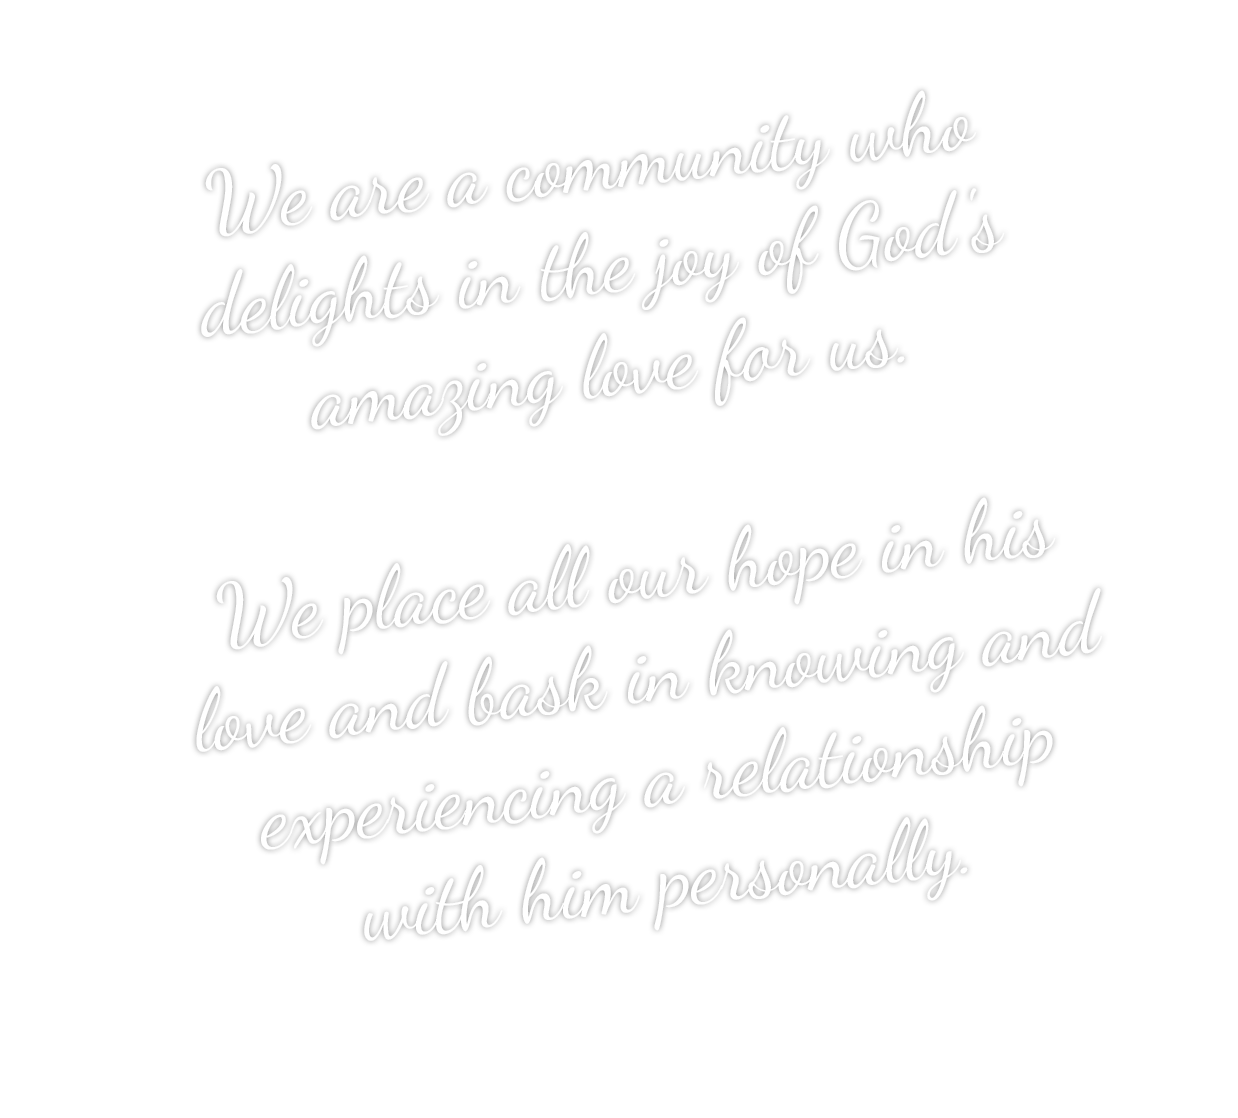 We are a community who delights in the joy of God's amazing love for us. We place all our hope in his love and bask in knowing and experiencing a relationship with Him personally.